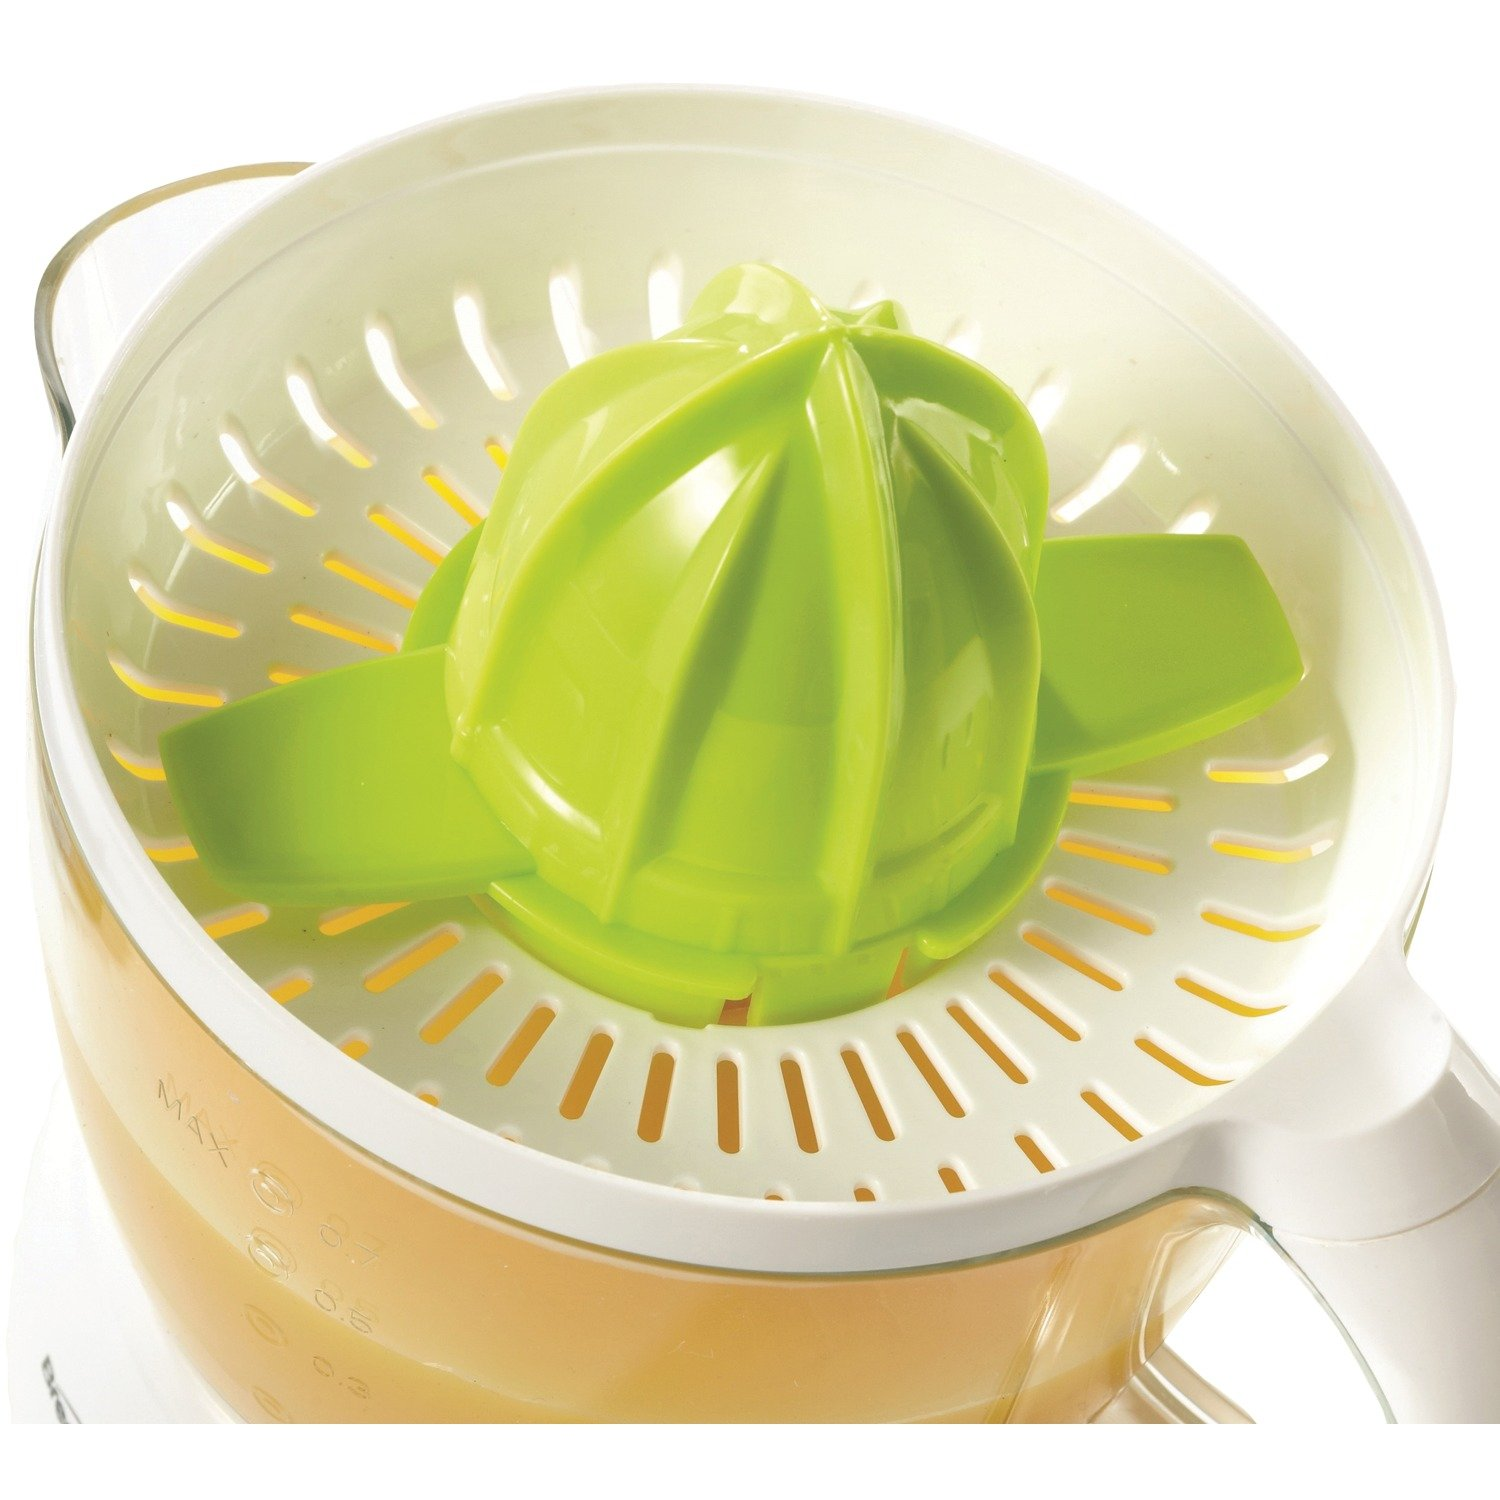 Brentwood  J-15  24oz  Electric  Citrus  Juicer,  White by Brentwood (Image #3)